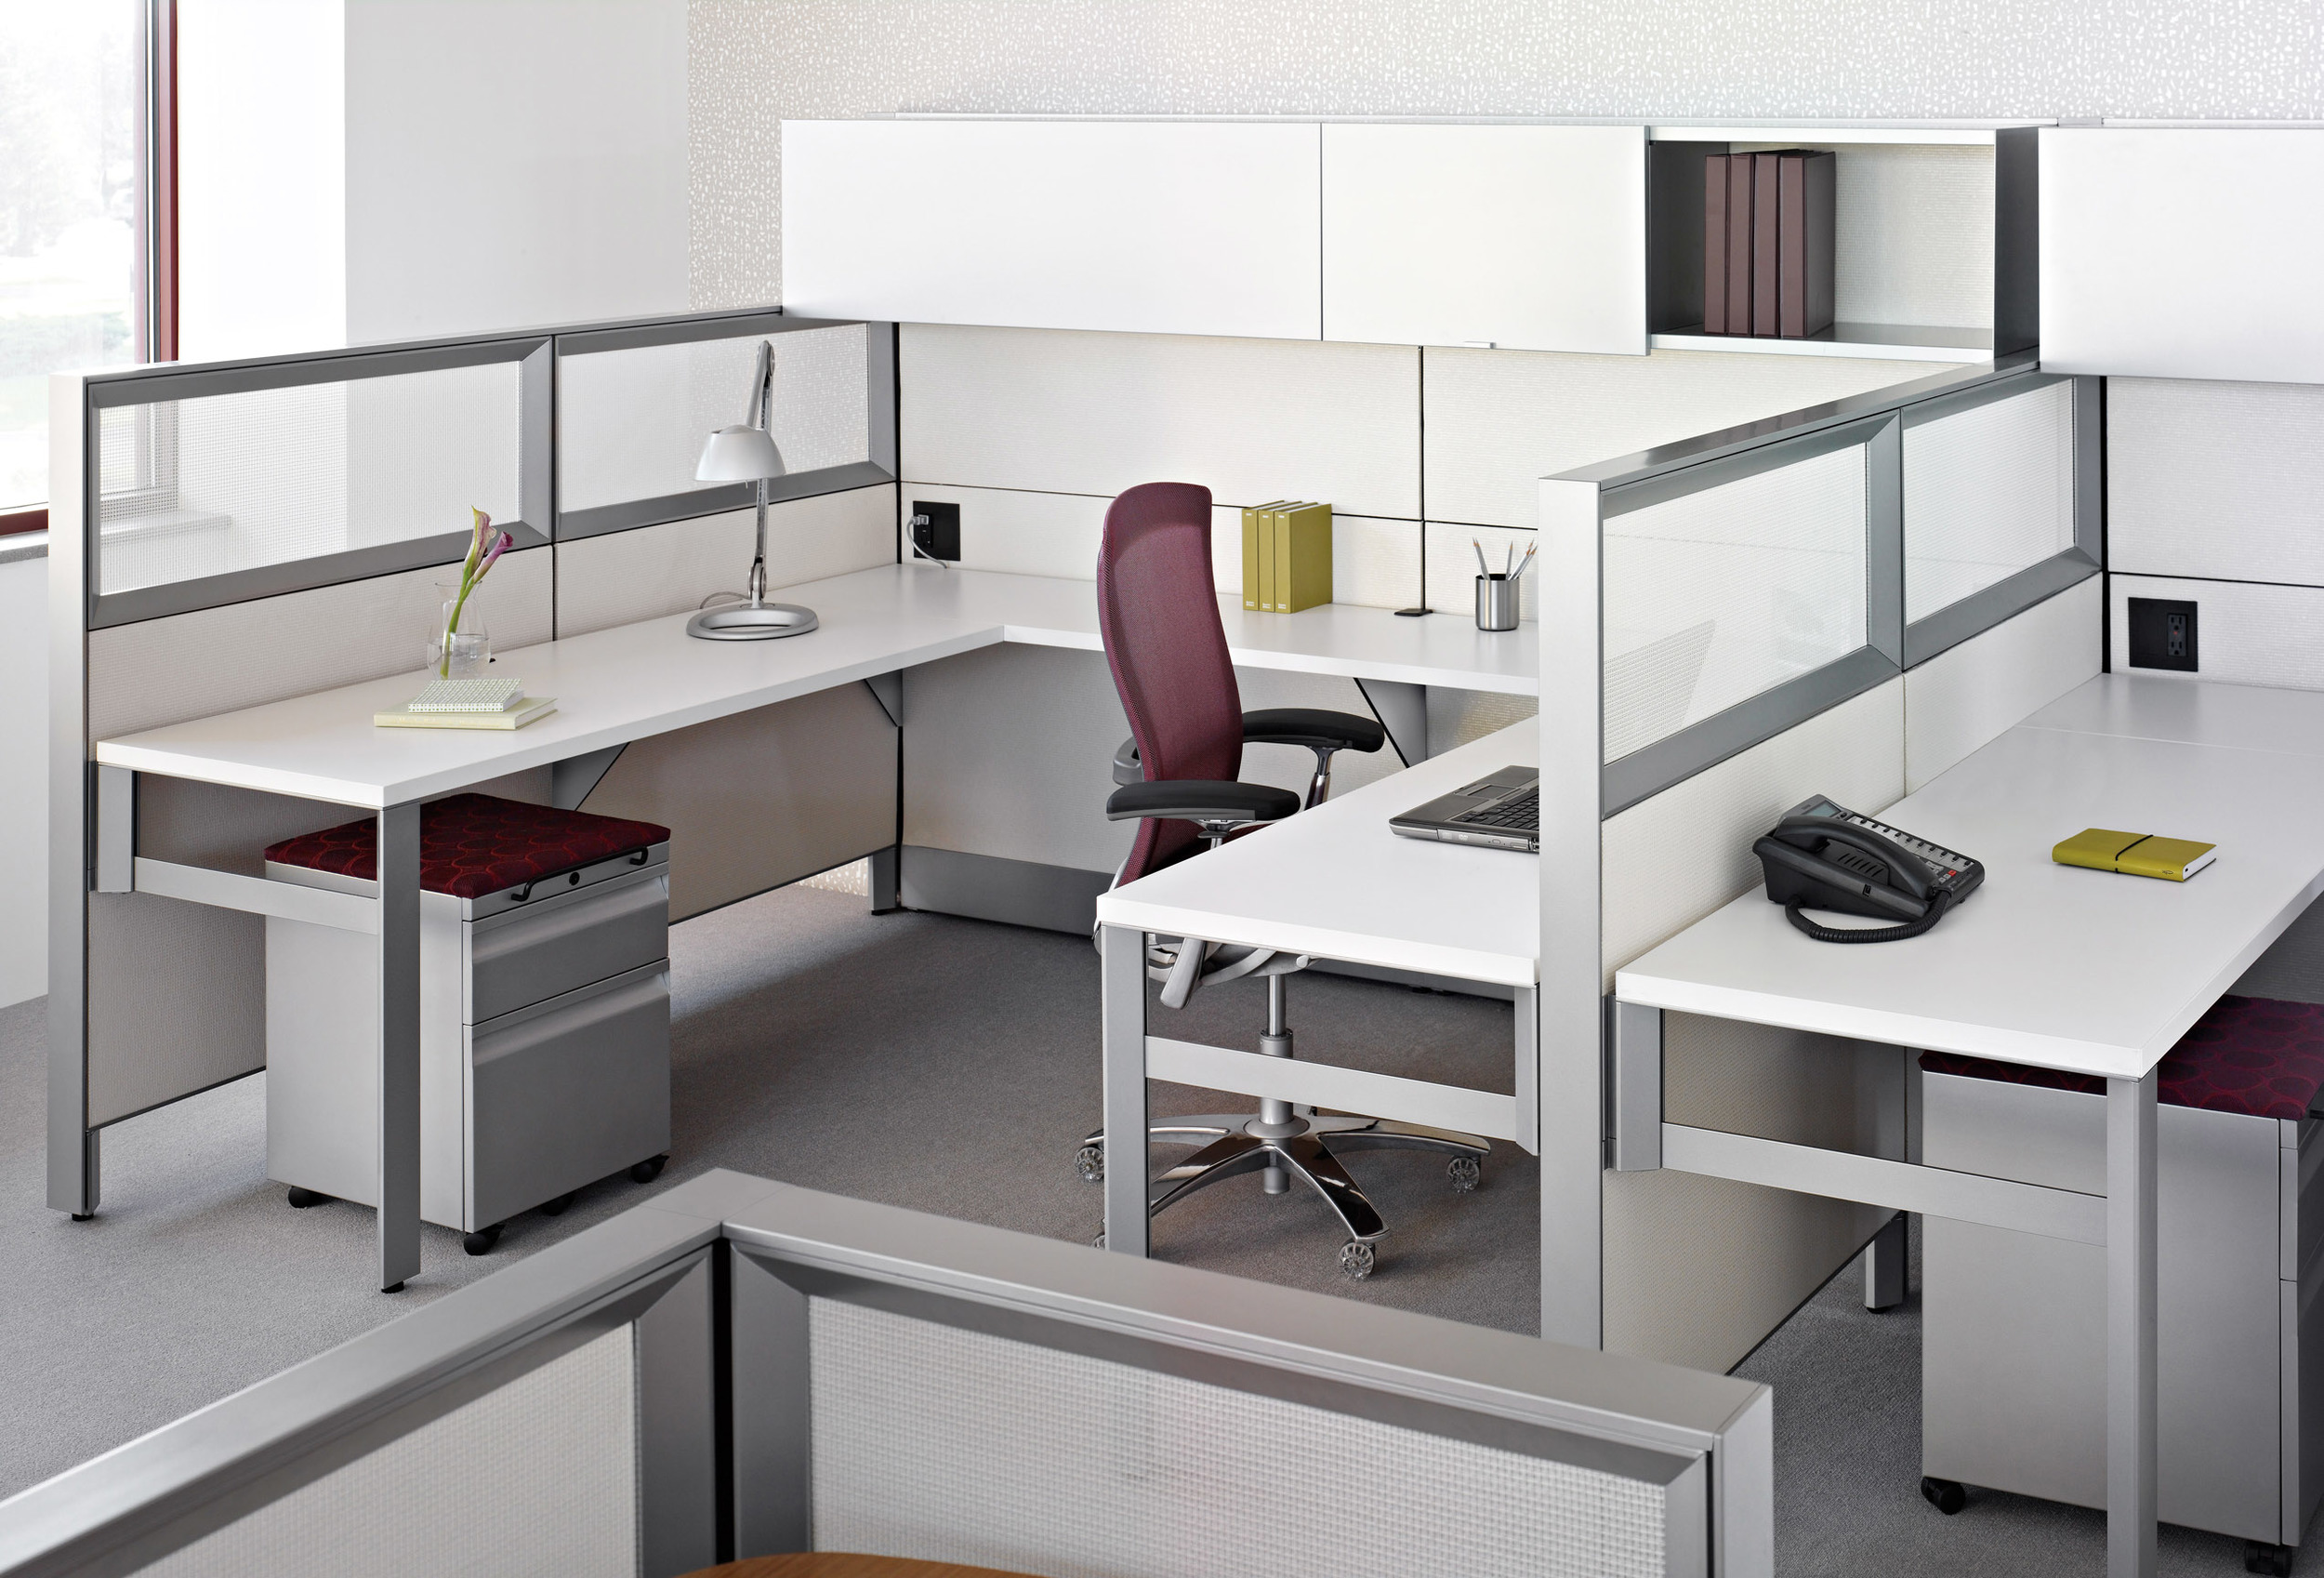 modular-office-furniture-with-modular-office-furniture-benefits-of-living-room-images-office-cabinets.jpg